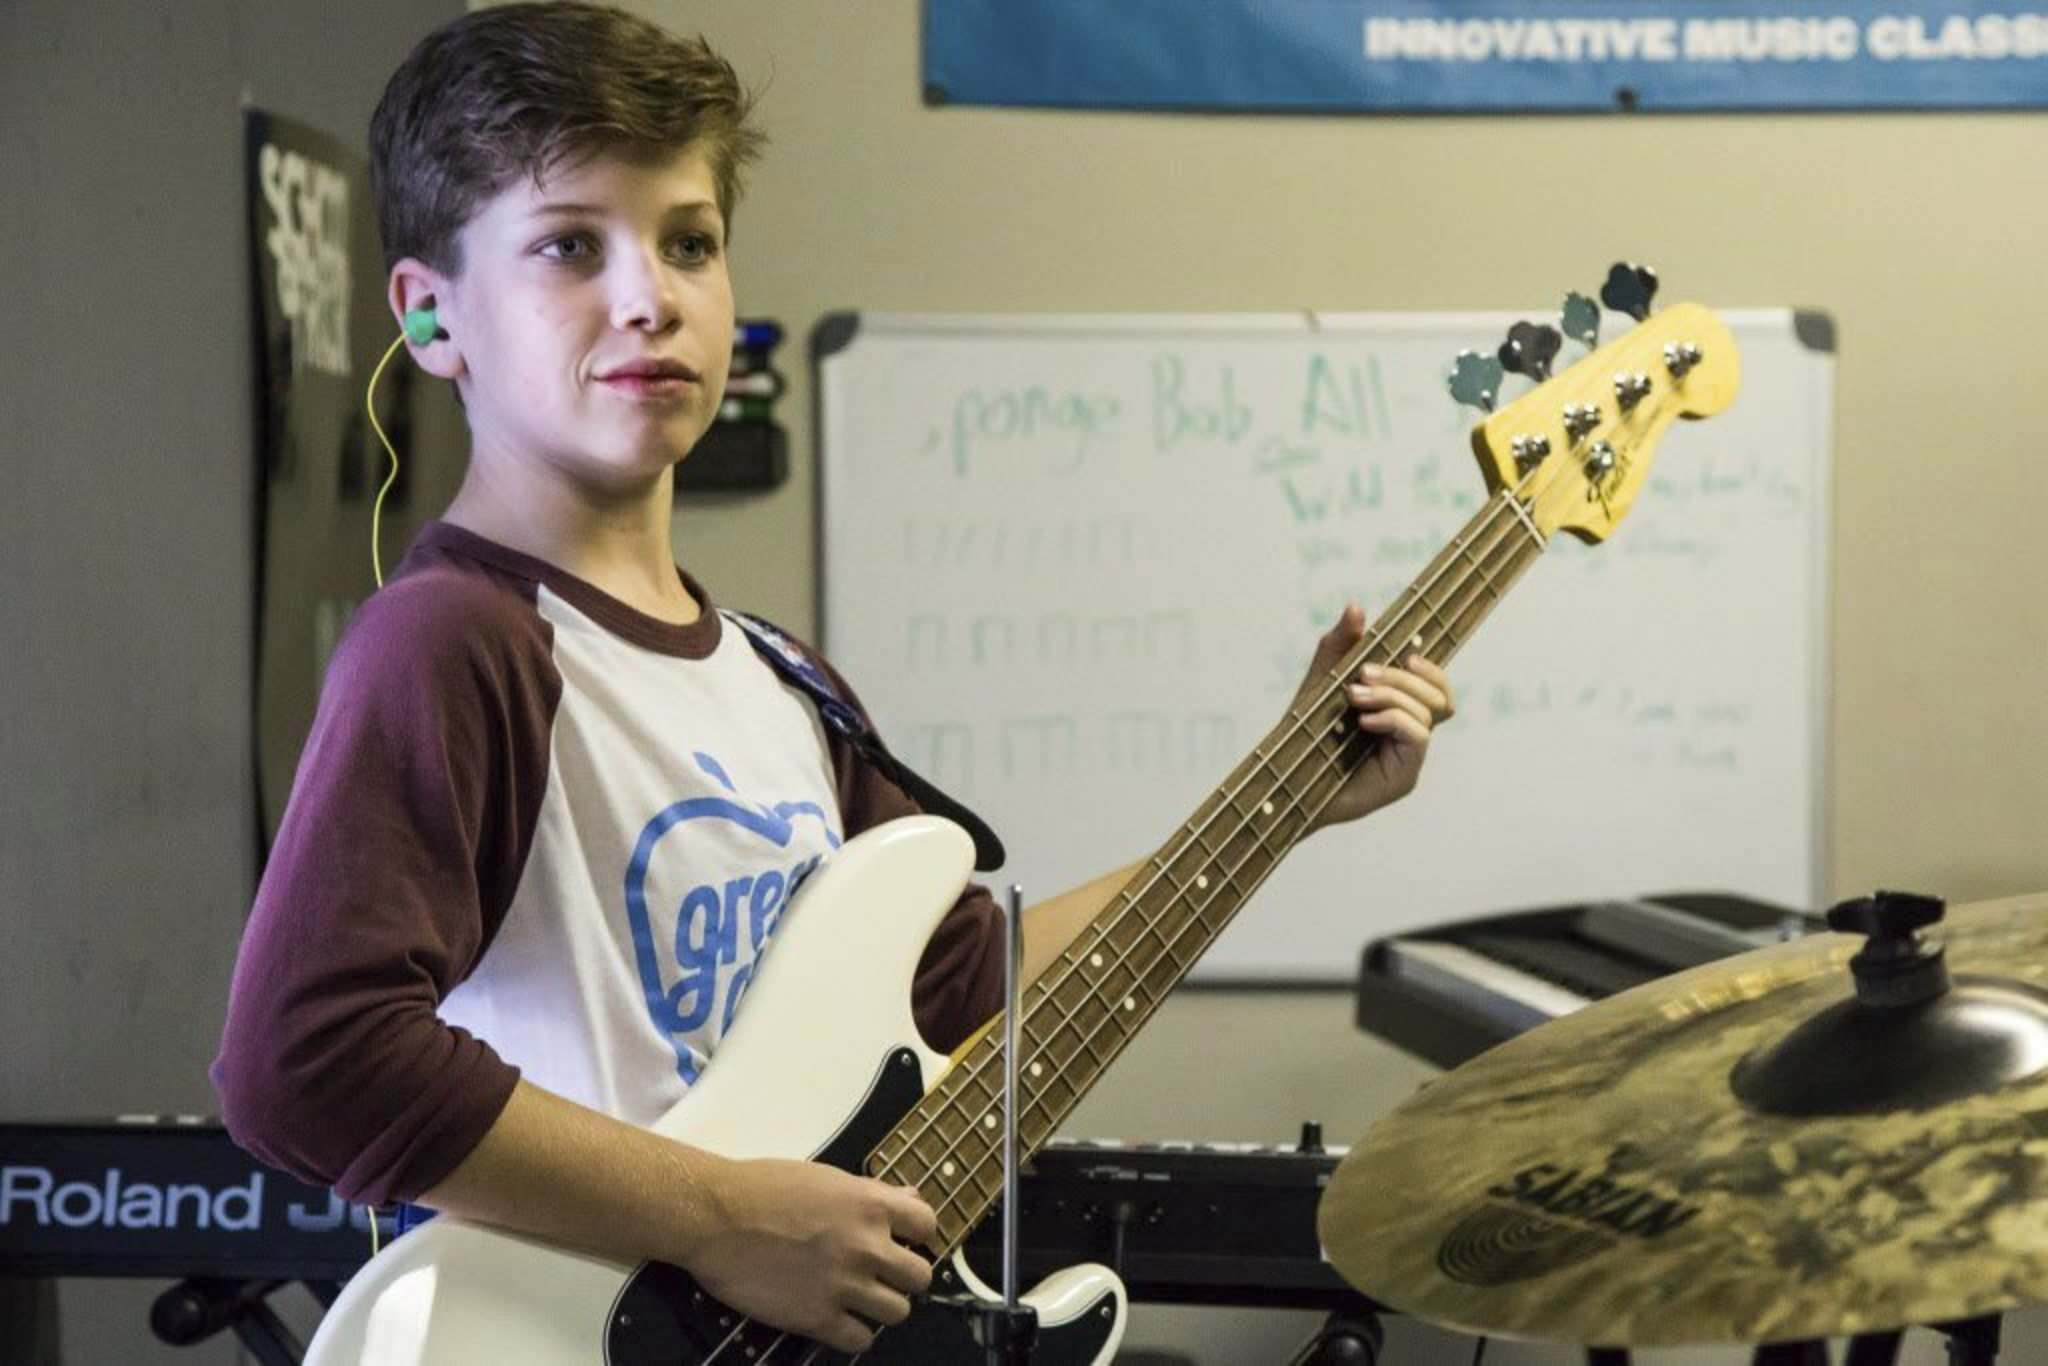 School of Rock students practice Pink Floyd's The Wall in preparation for their recital at The West End Cultural Centre. Jari Pedersen, 12, plays bass during a rehearsal session.